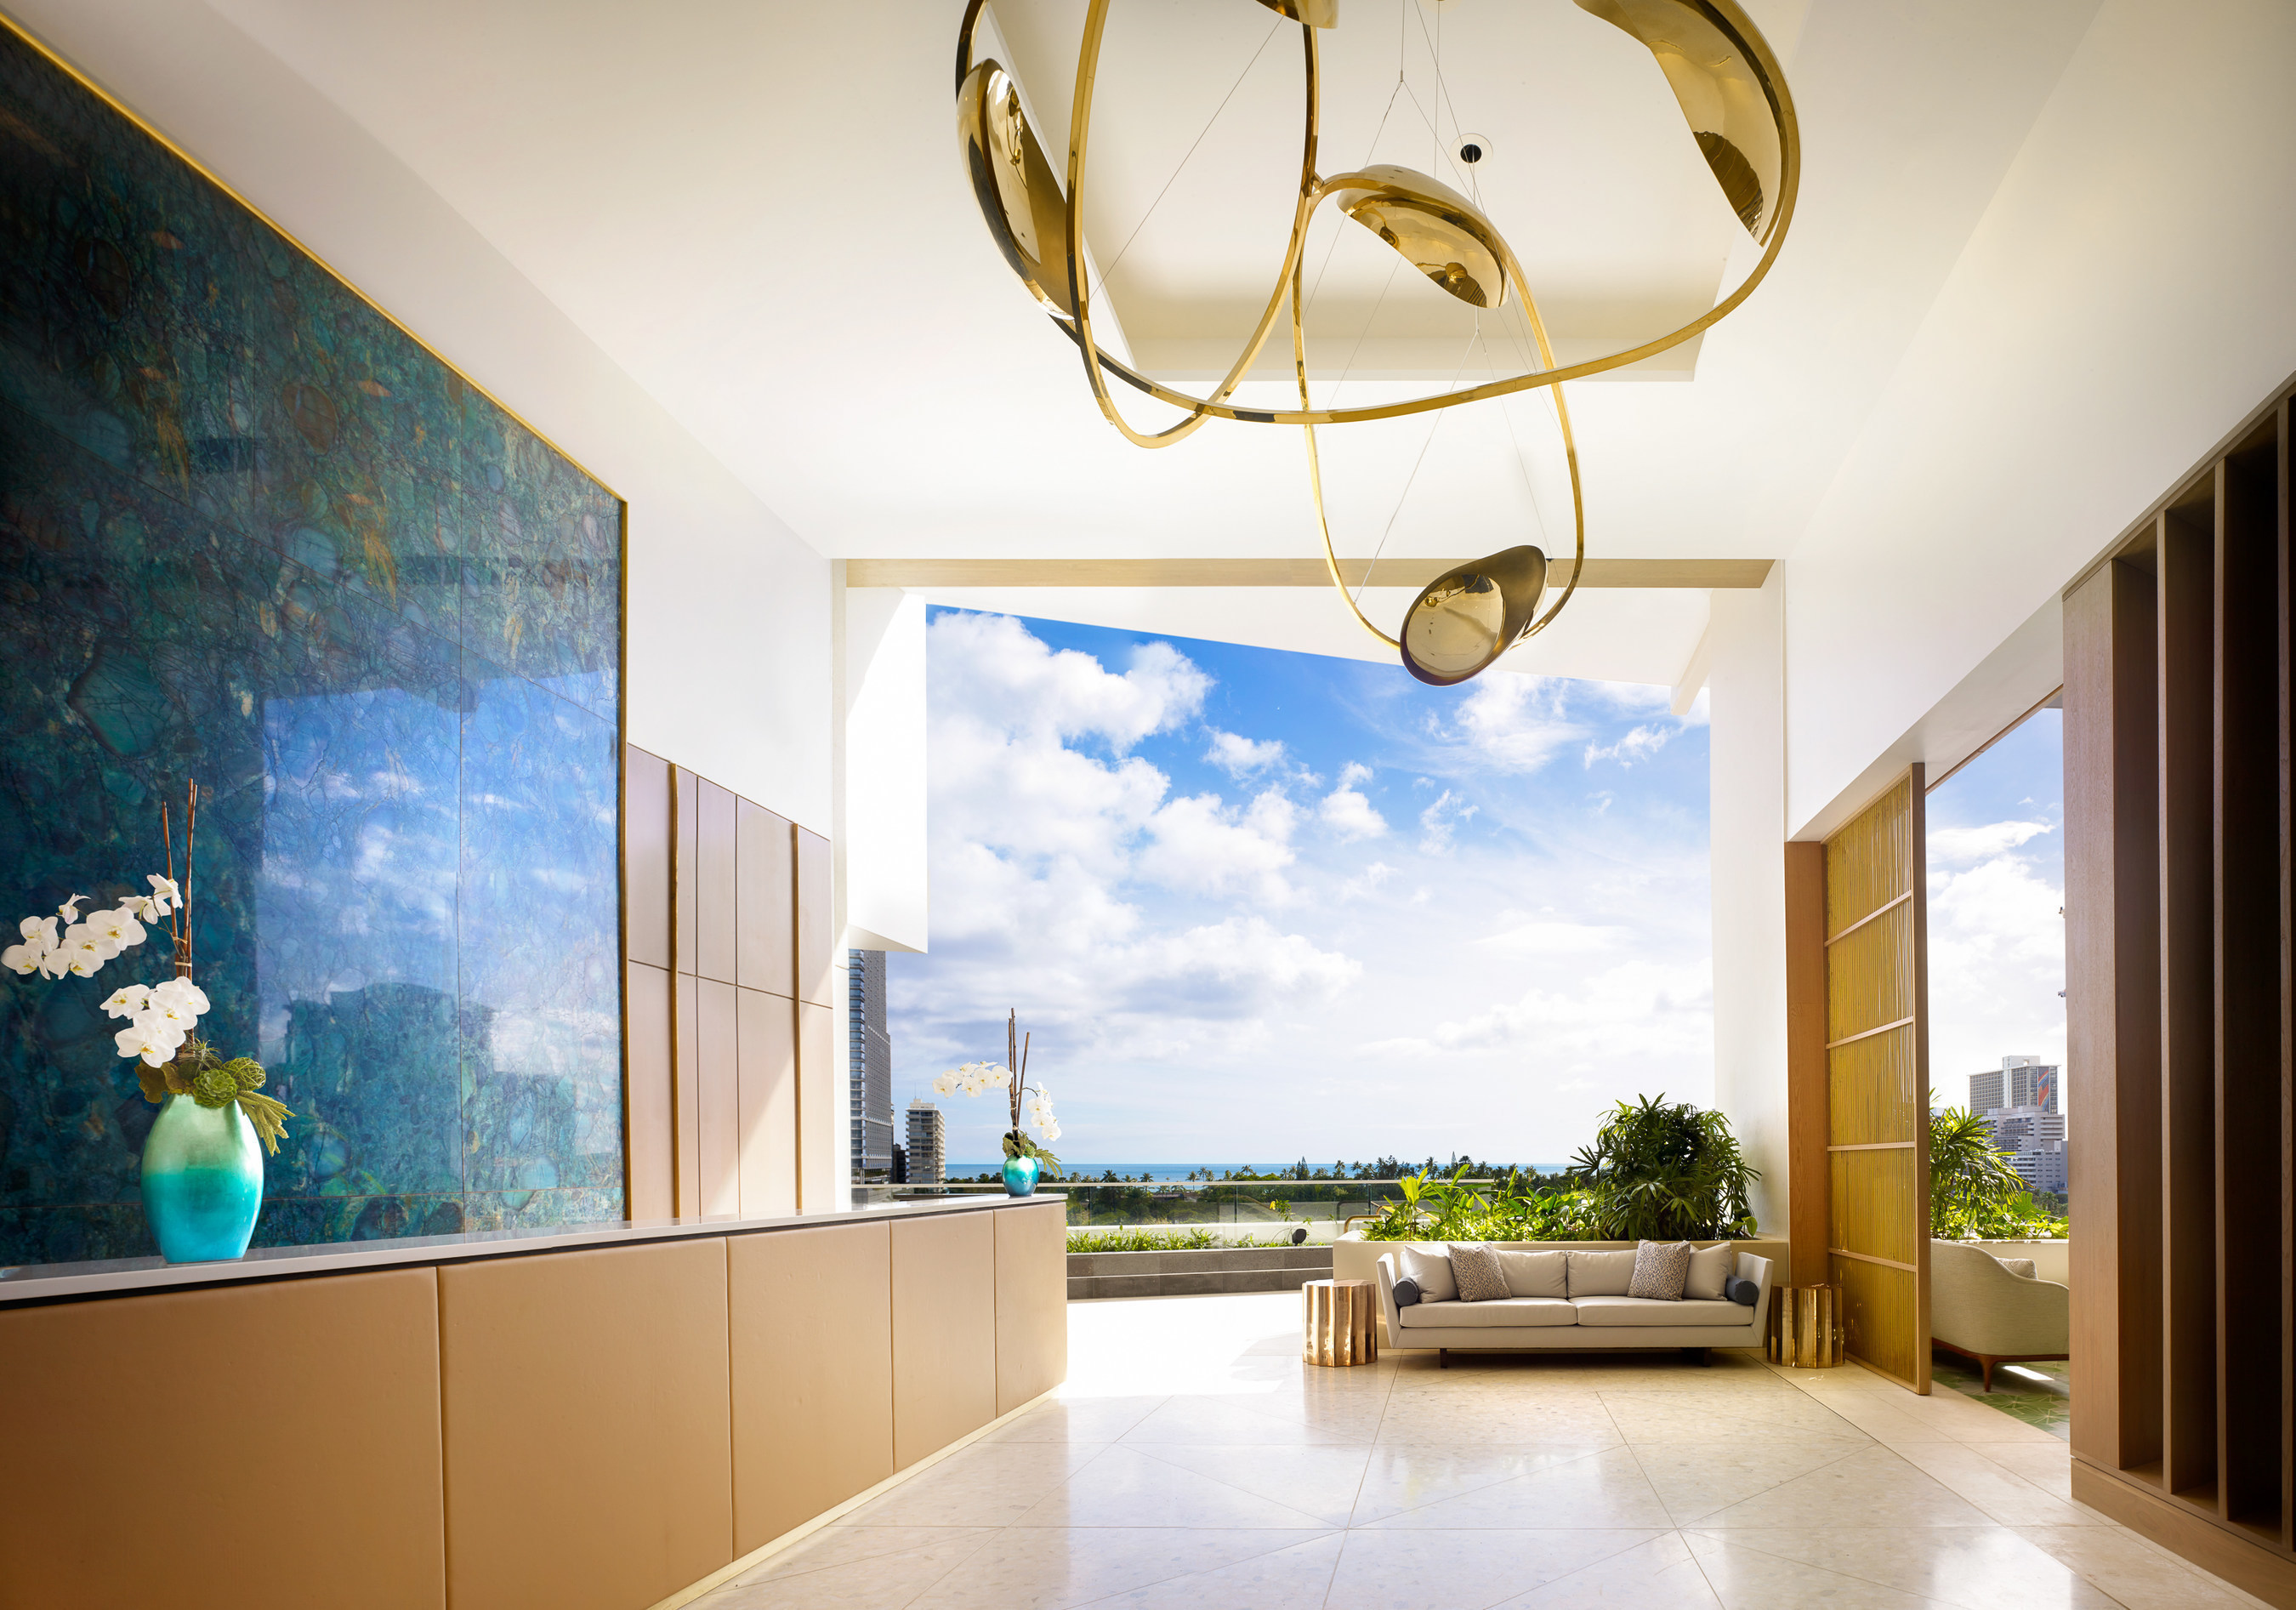 The Ritz-Carlton Residences, Waikiki Beach opened its doors to a new wave of global travelers to the majestic island of Oahu in world-renowned Waikiki.